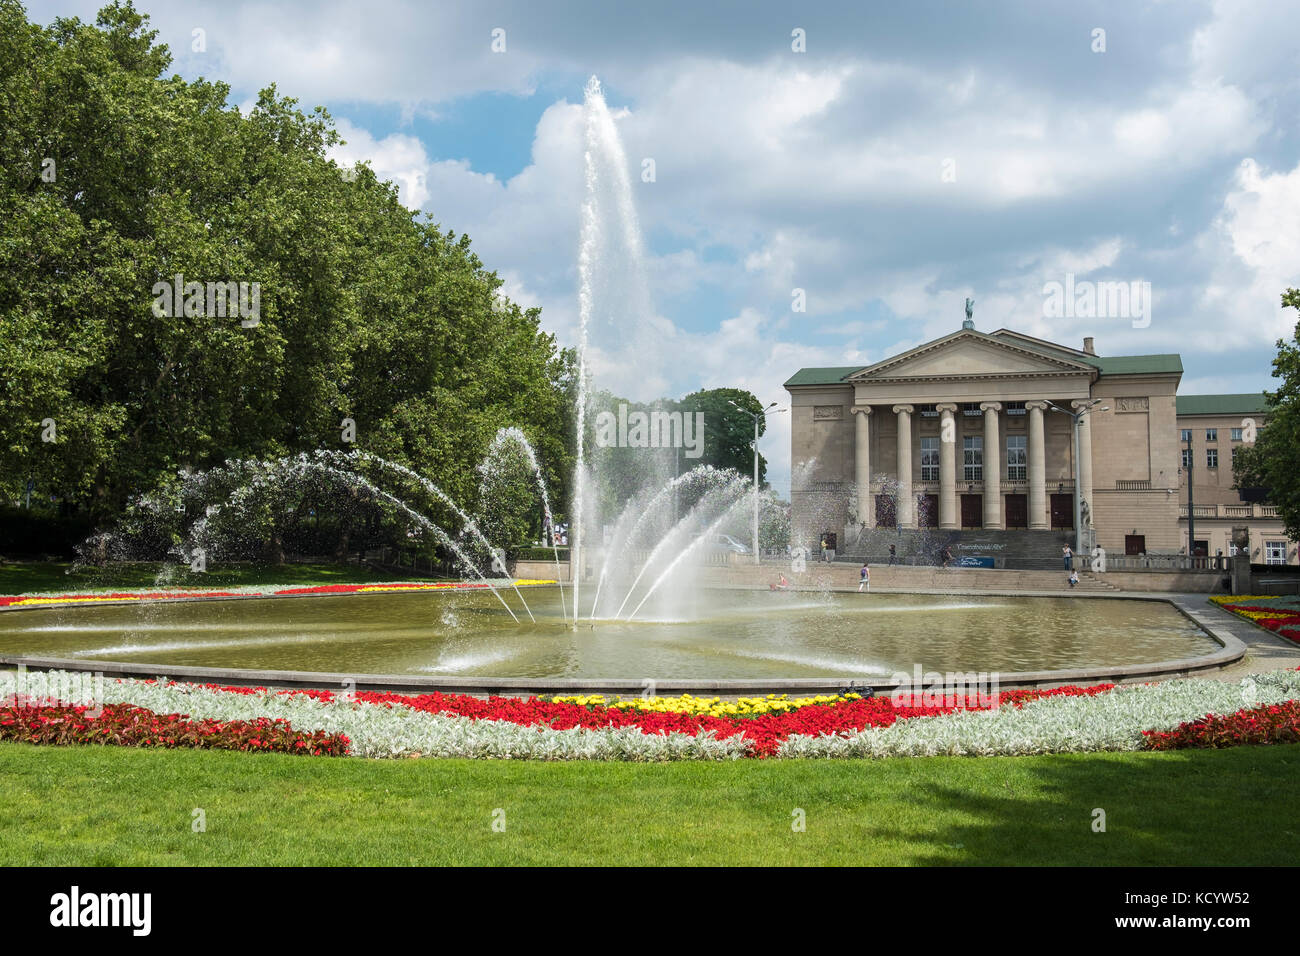 The fountain in Park Mickiewicza, in front of the Teatre Wielki, Poznan, Poland. - Stock Image